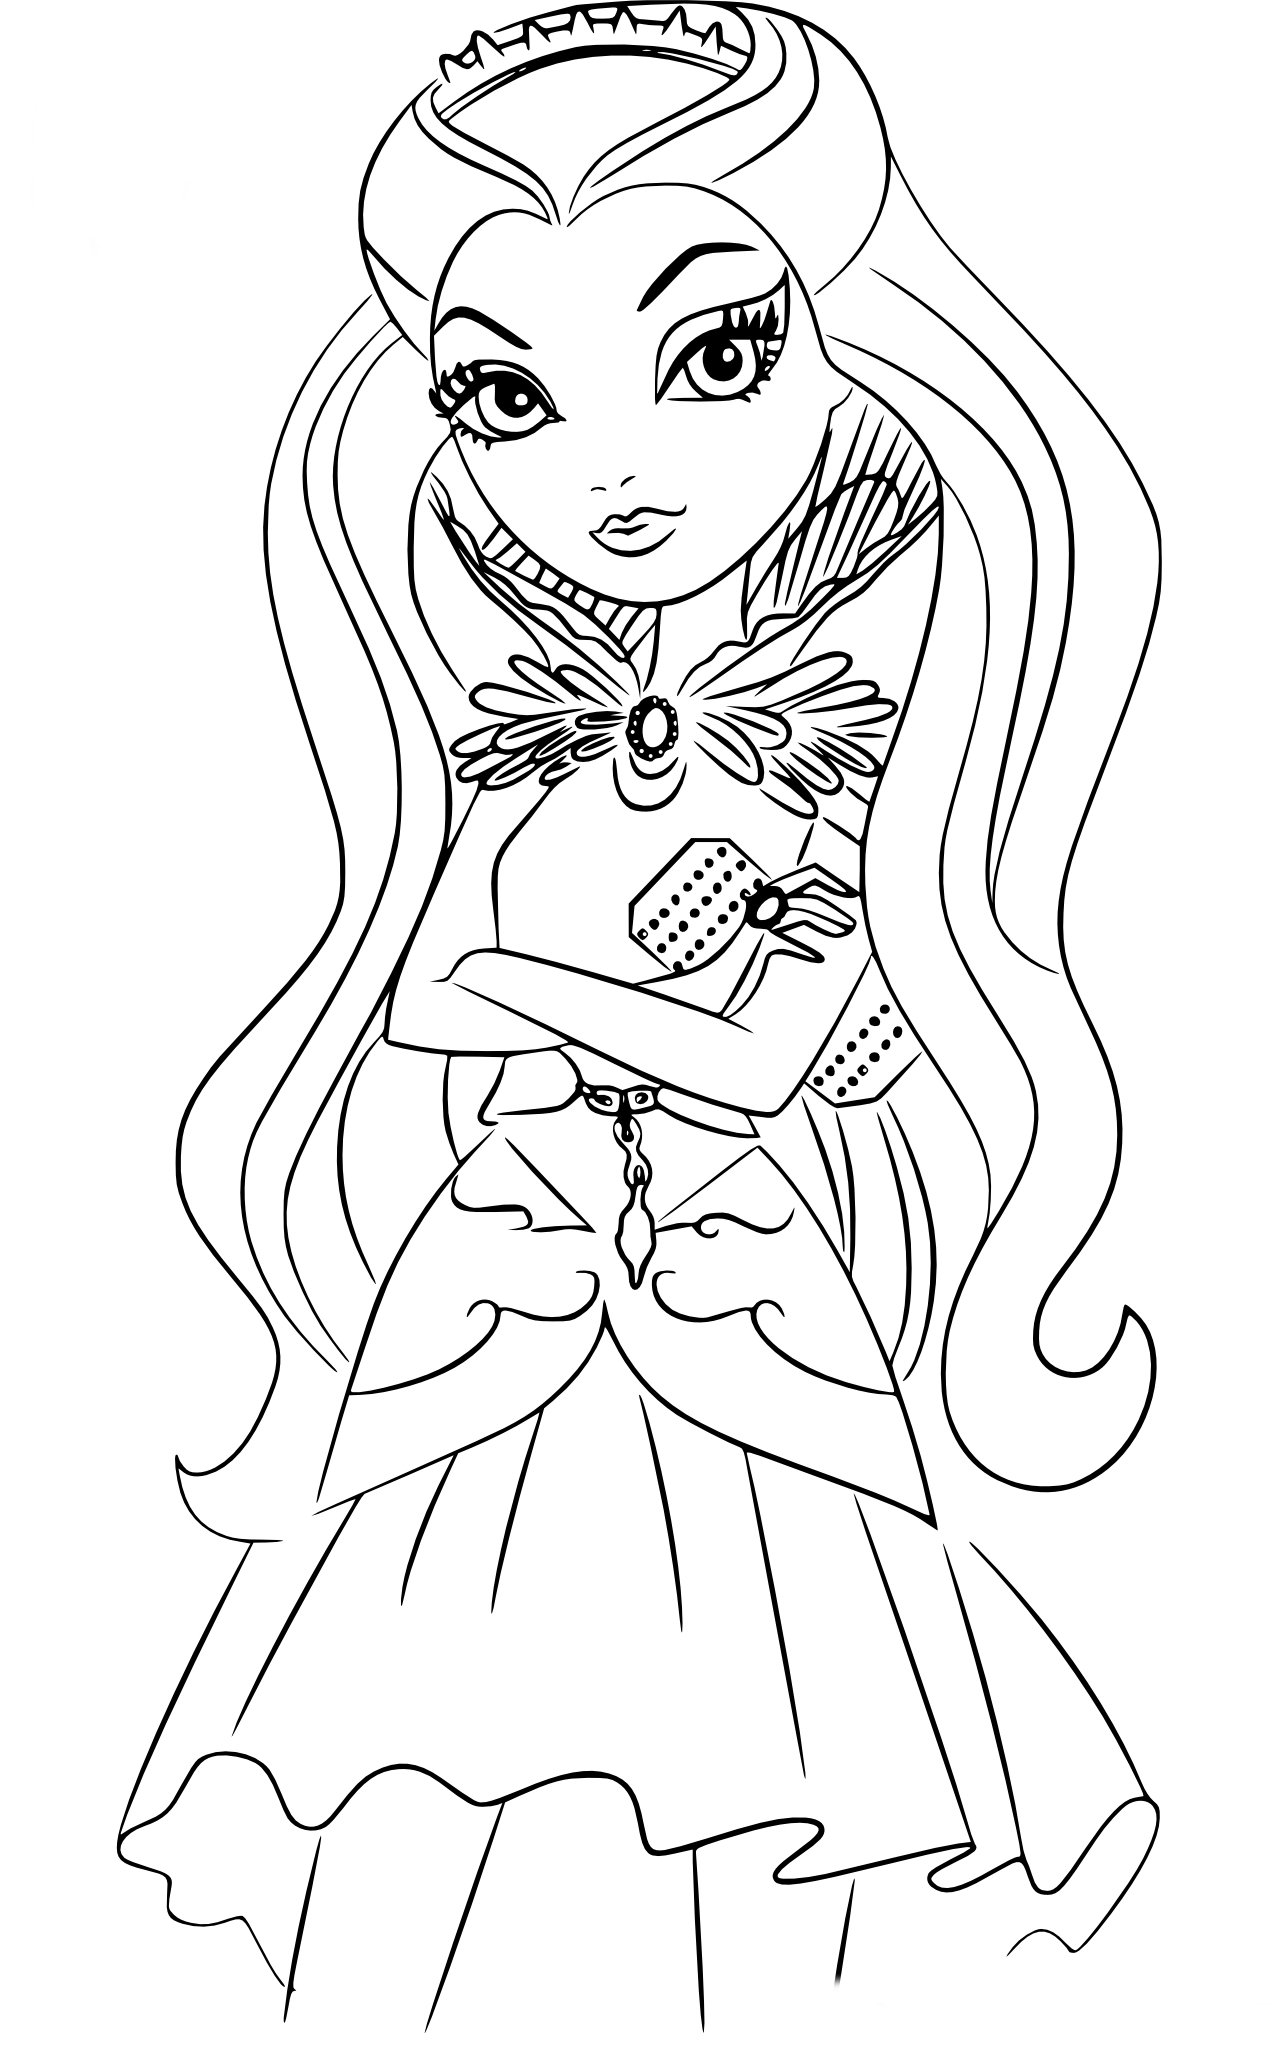 Raven Coloring Pages - Raven Coloring Pages Coloring Pages